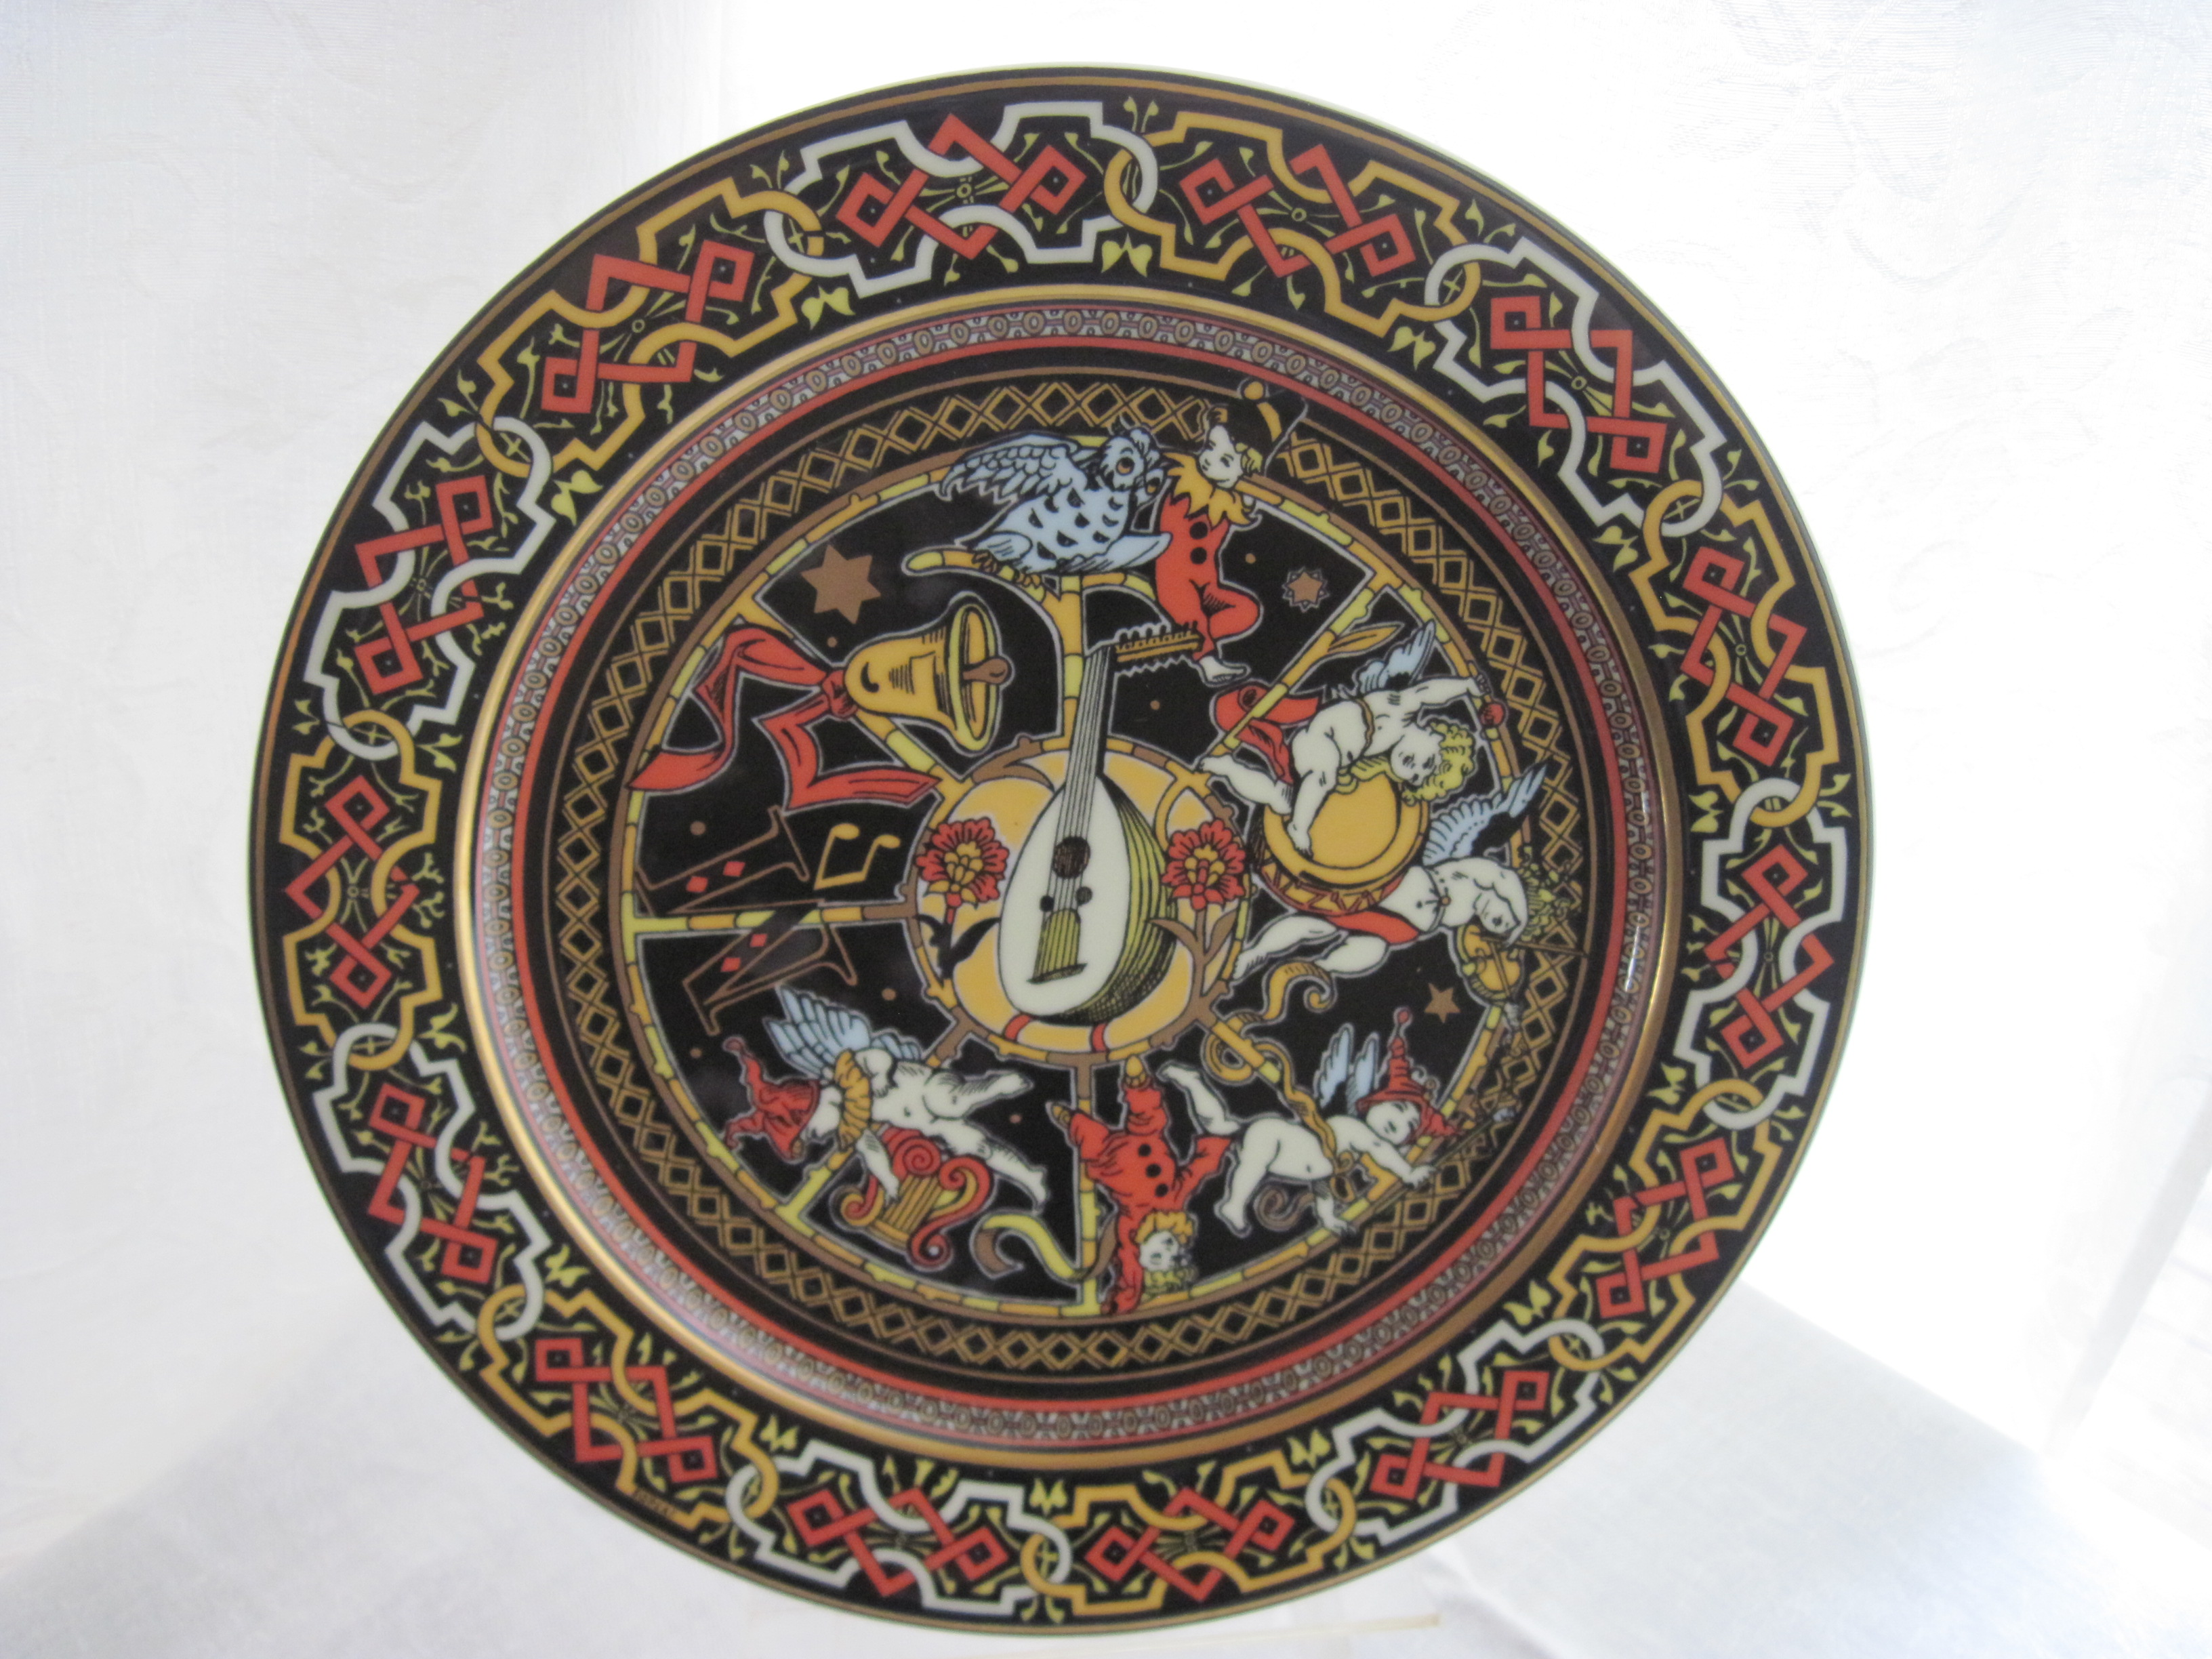 Backst& says Bopla! Magic Switzerland. Dinner plate $30.00 in excellent condition. & Bopla Original \u0026 Magic Plates Switzerland | fabfindsblog